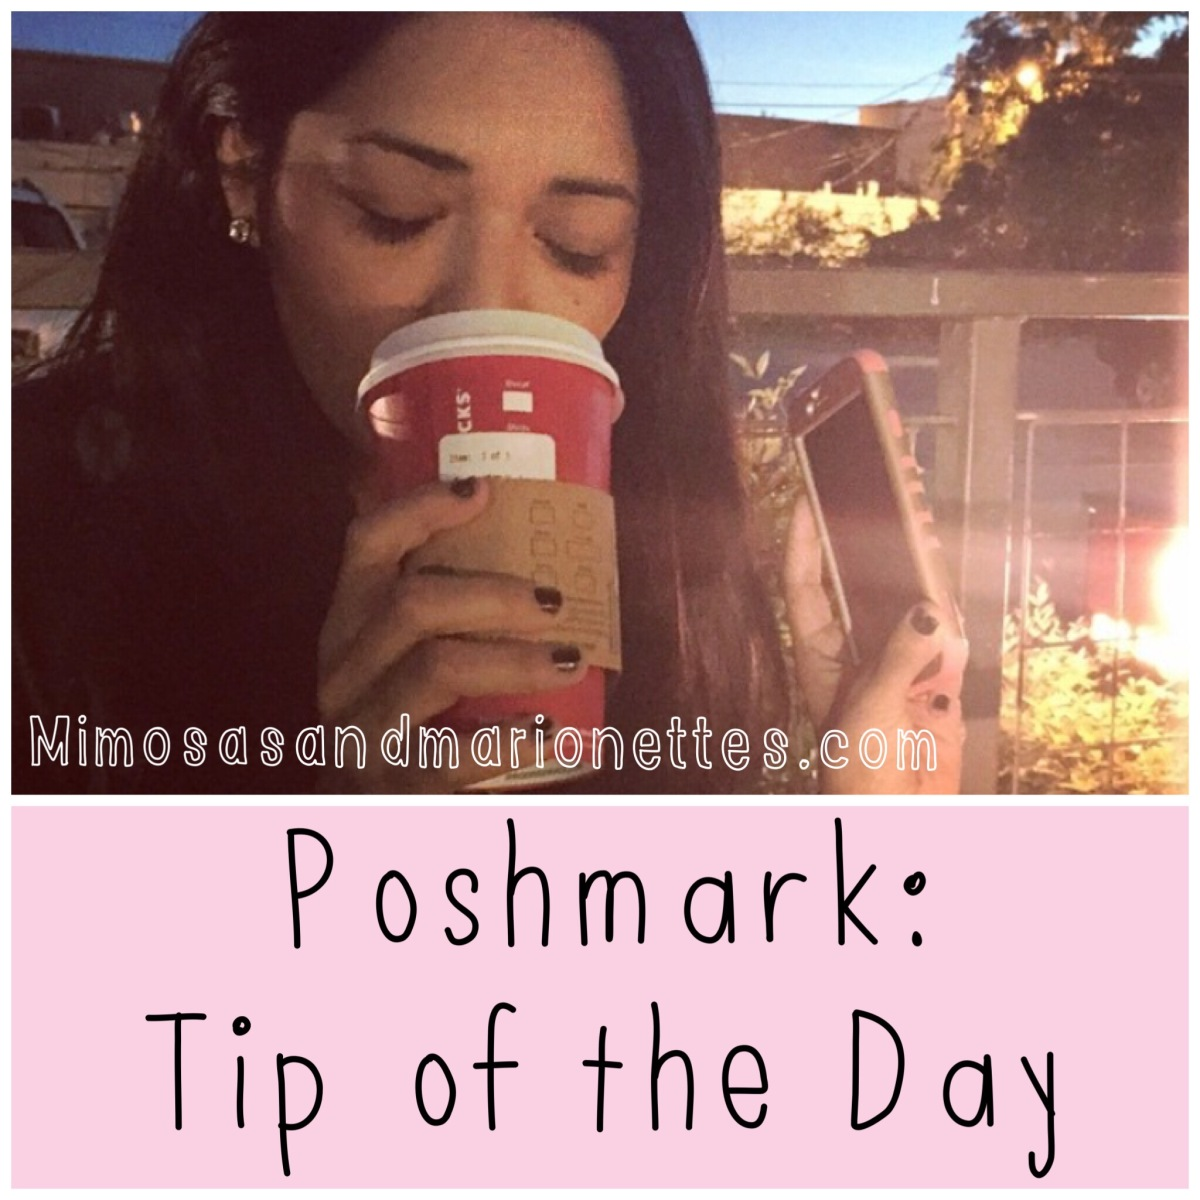 Poshmark | Tip of the day 5/3/17